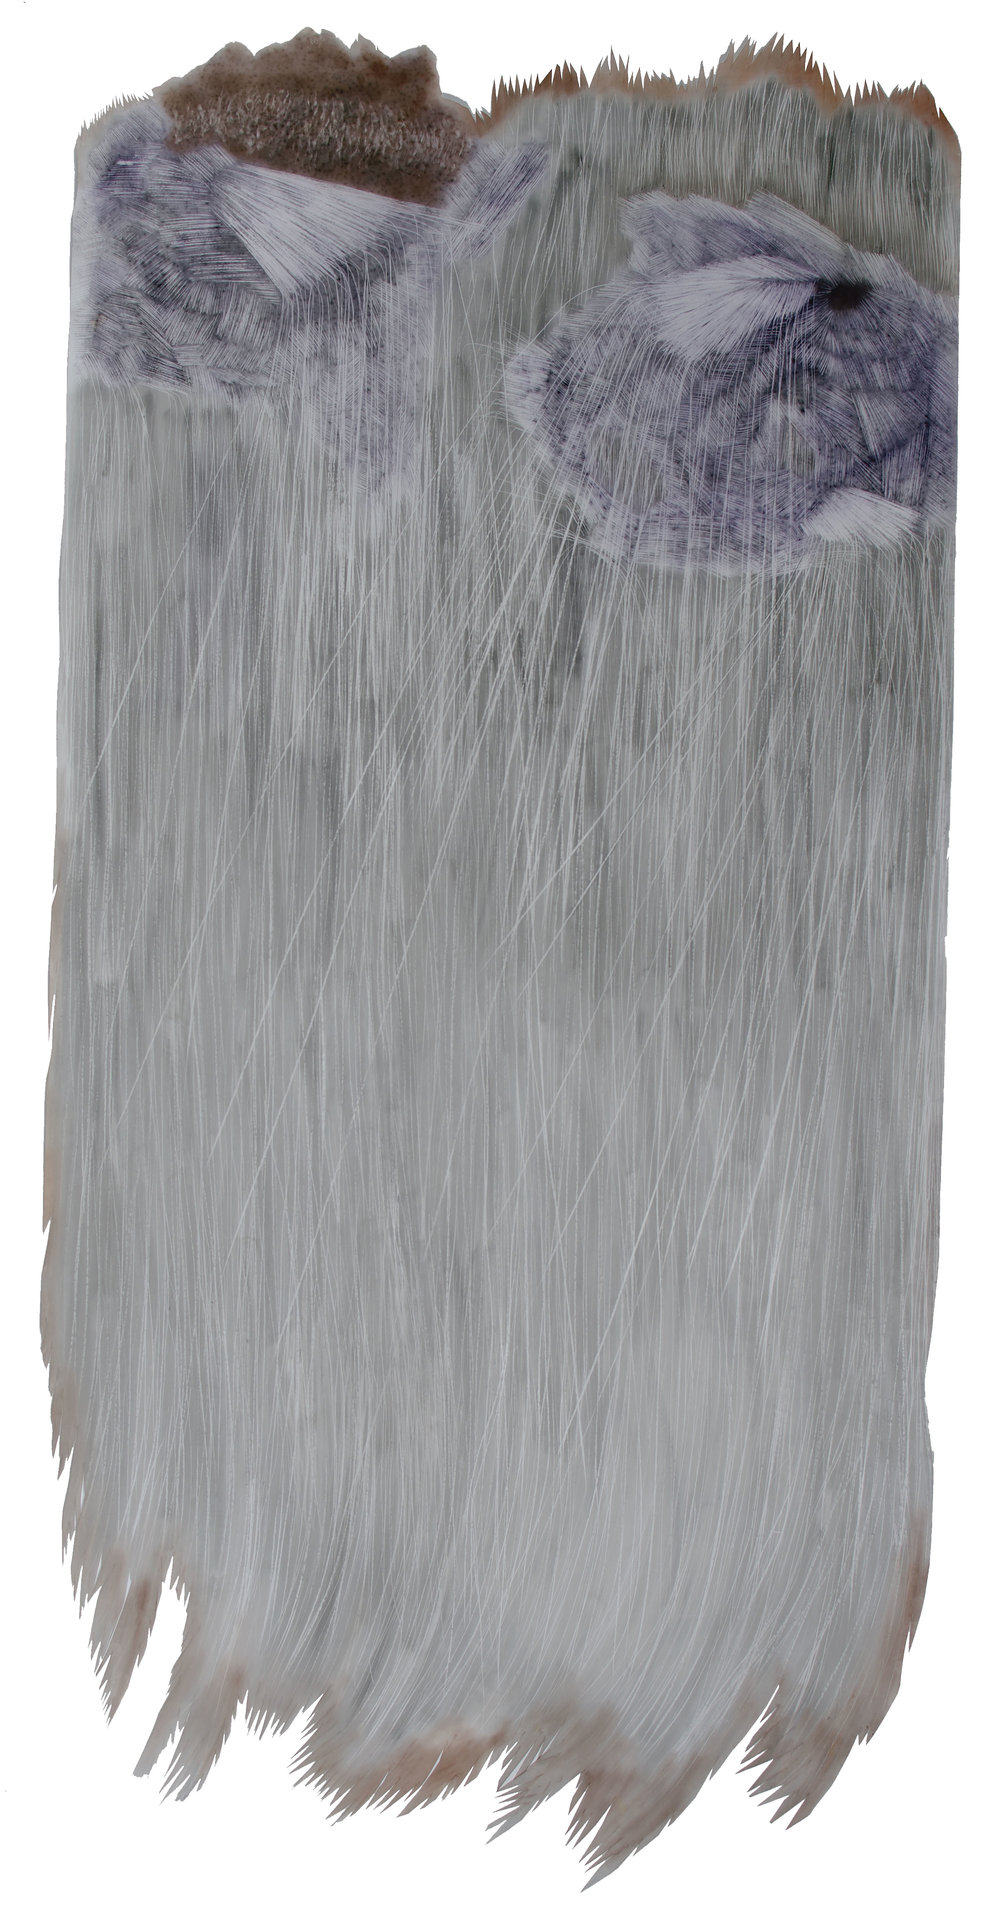 Untitled II (40 inches x 70 inches-pastel and powdered graphite erasing on dura-lar)